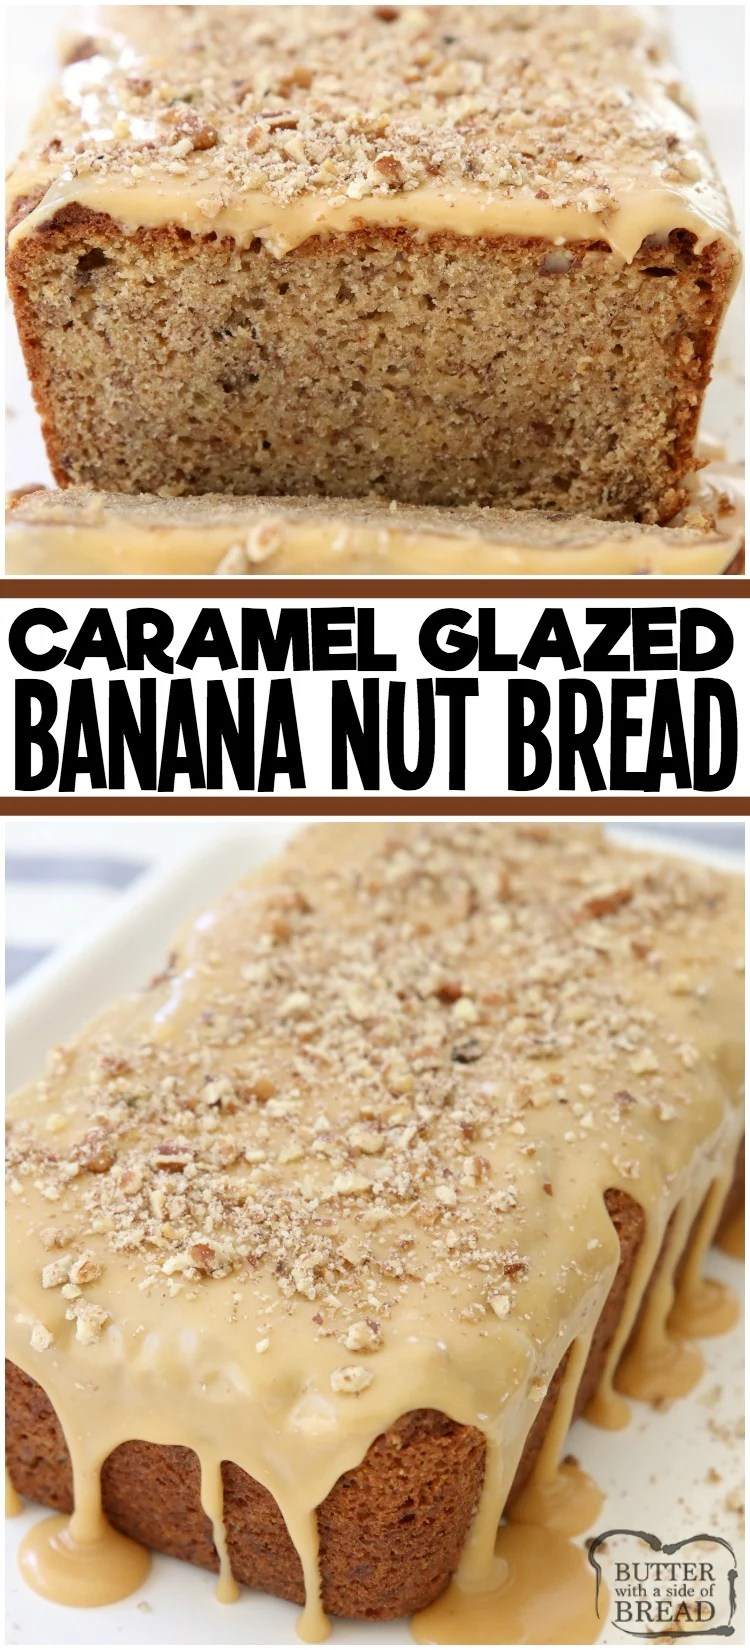 Caramel Banana Nut Bread made with ripe bananas and spiced with cinnamon, nutmeg and ginger. Topped with buttery streusel & caramel glaze. Best Banana Nut Bread recipe ever! #bread #banana #nuts #walnuts #pecans #bananabread #sweetbread #baking #caramel #food #recipe from BUTTER WITH A SIDE OF BREAD